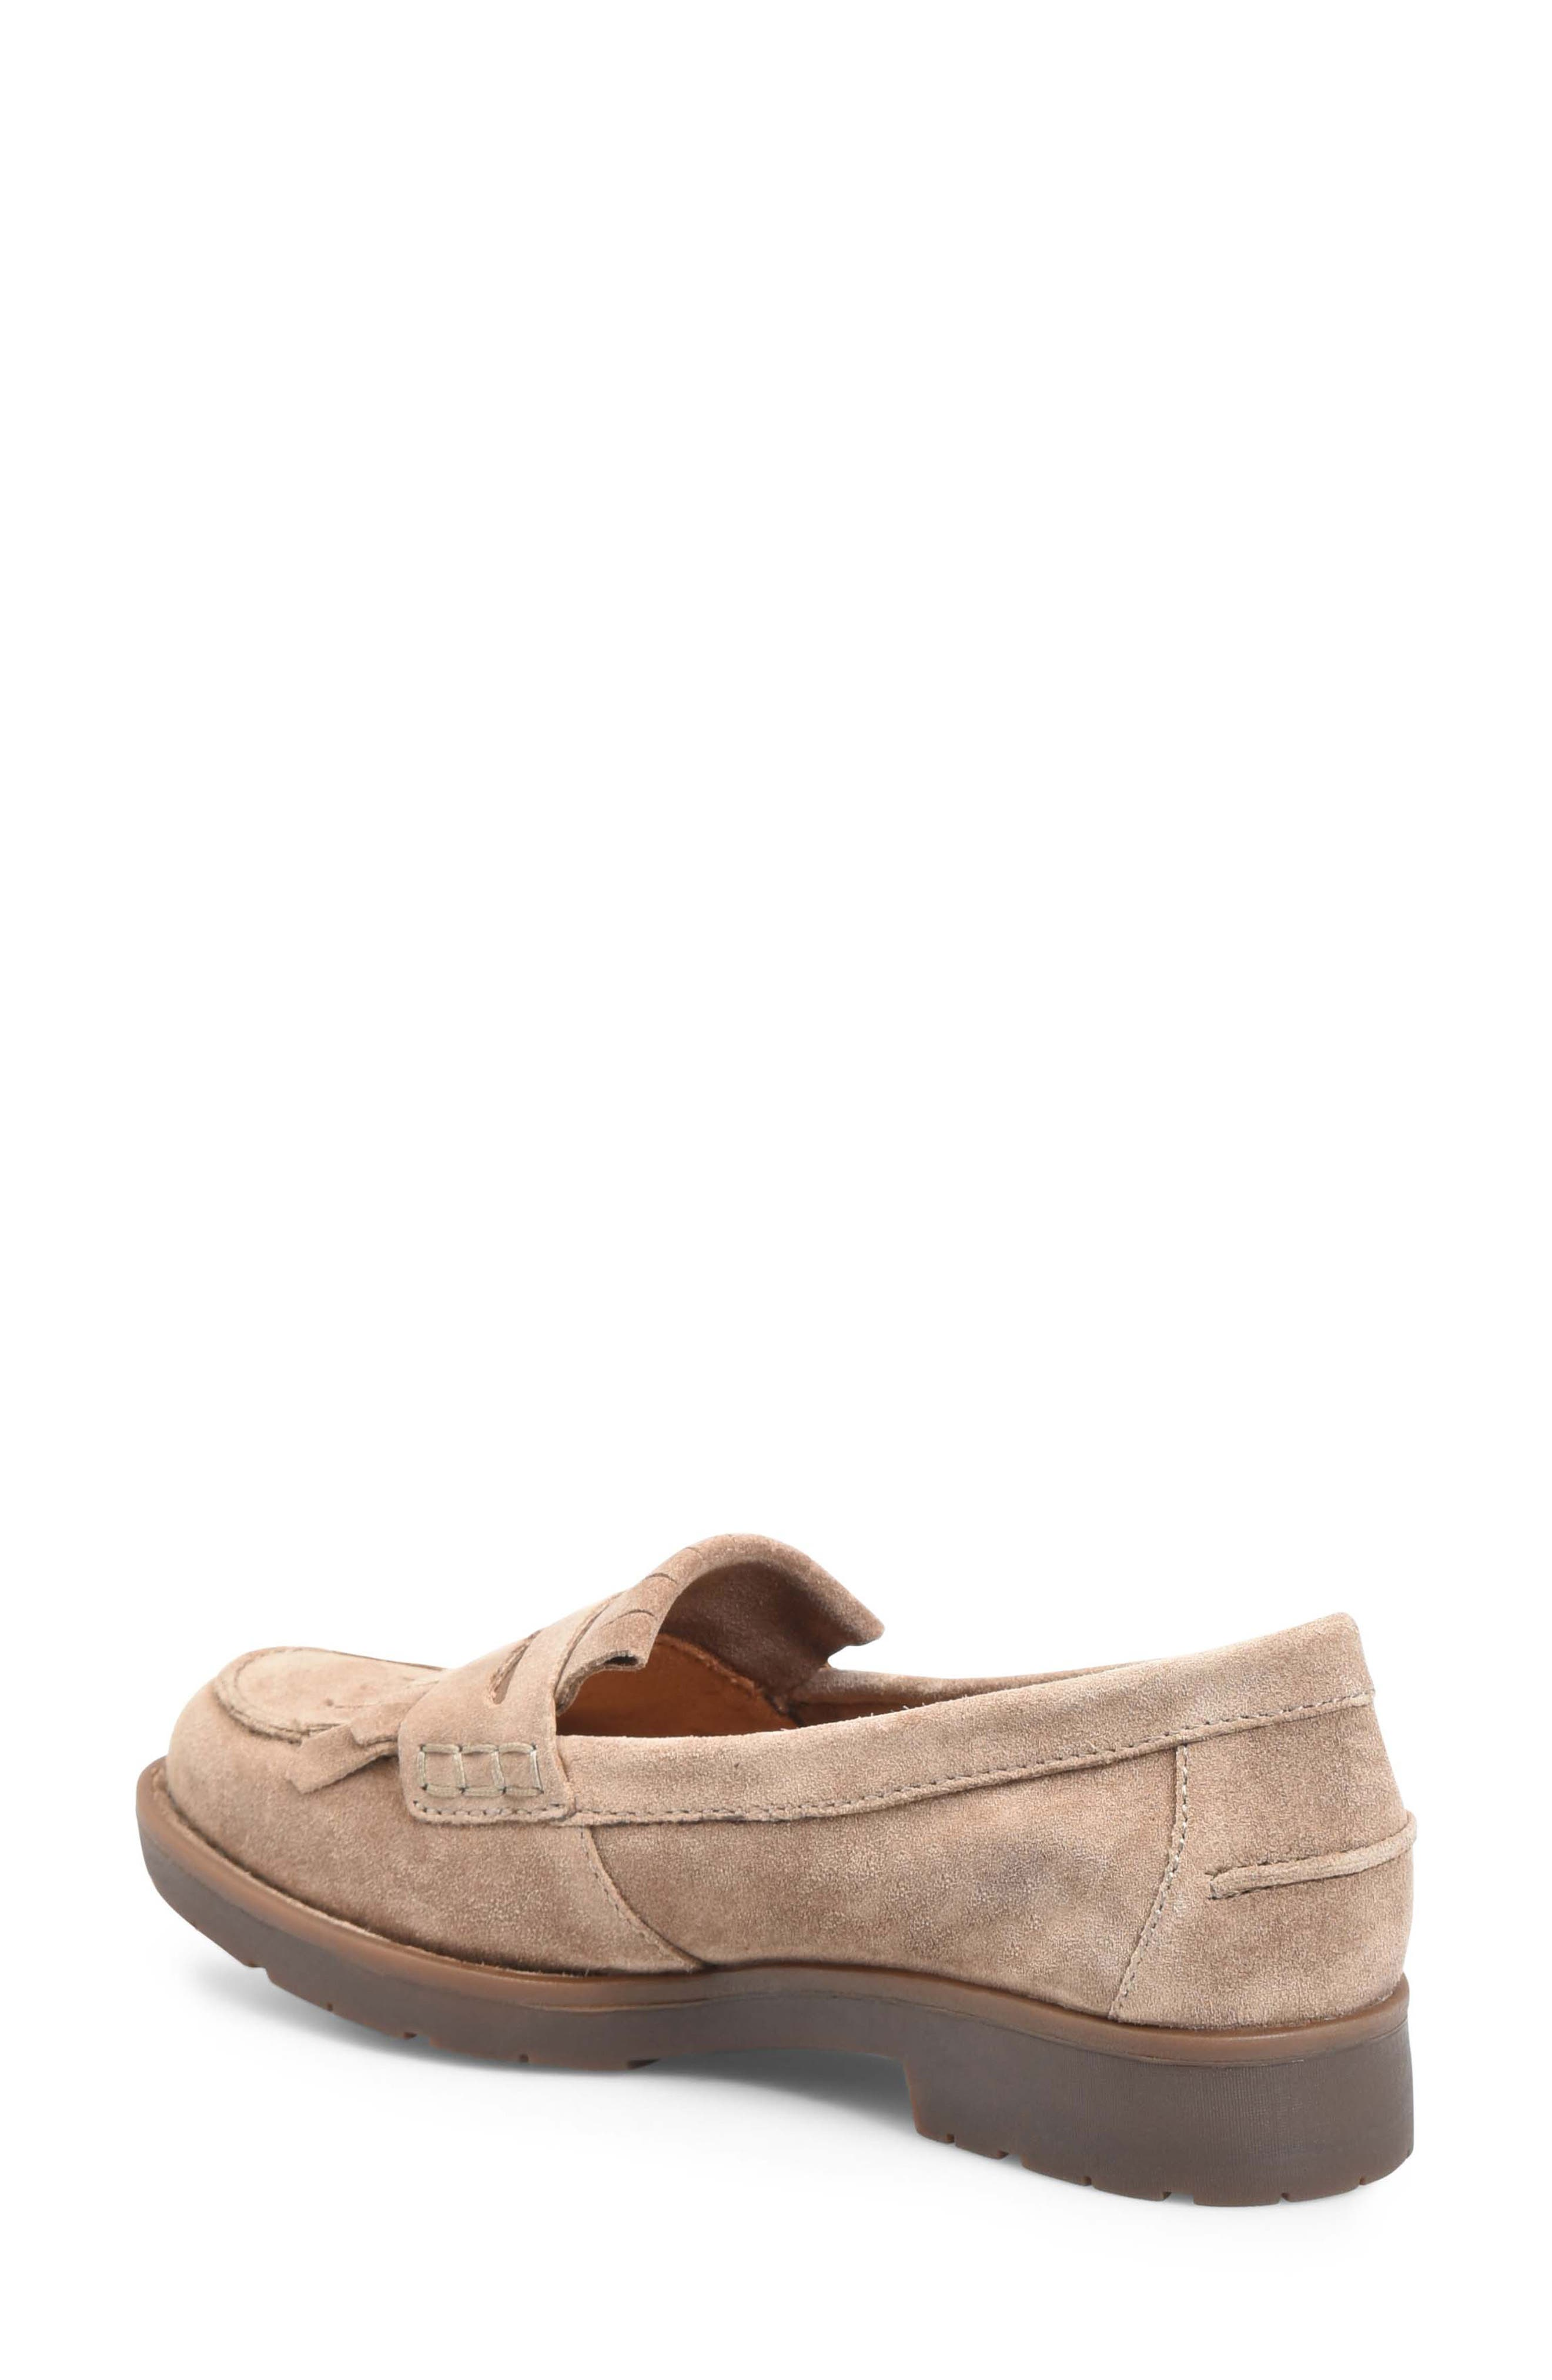 Lorens Loafer,                             Alternate thumbnail 2, color,                             TAUPE SUEDE